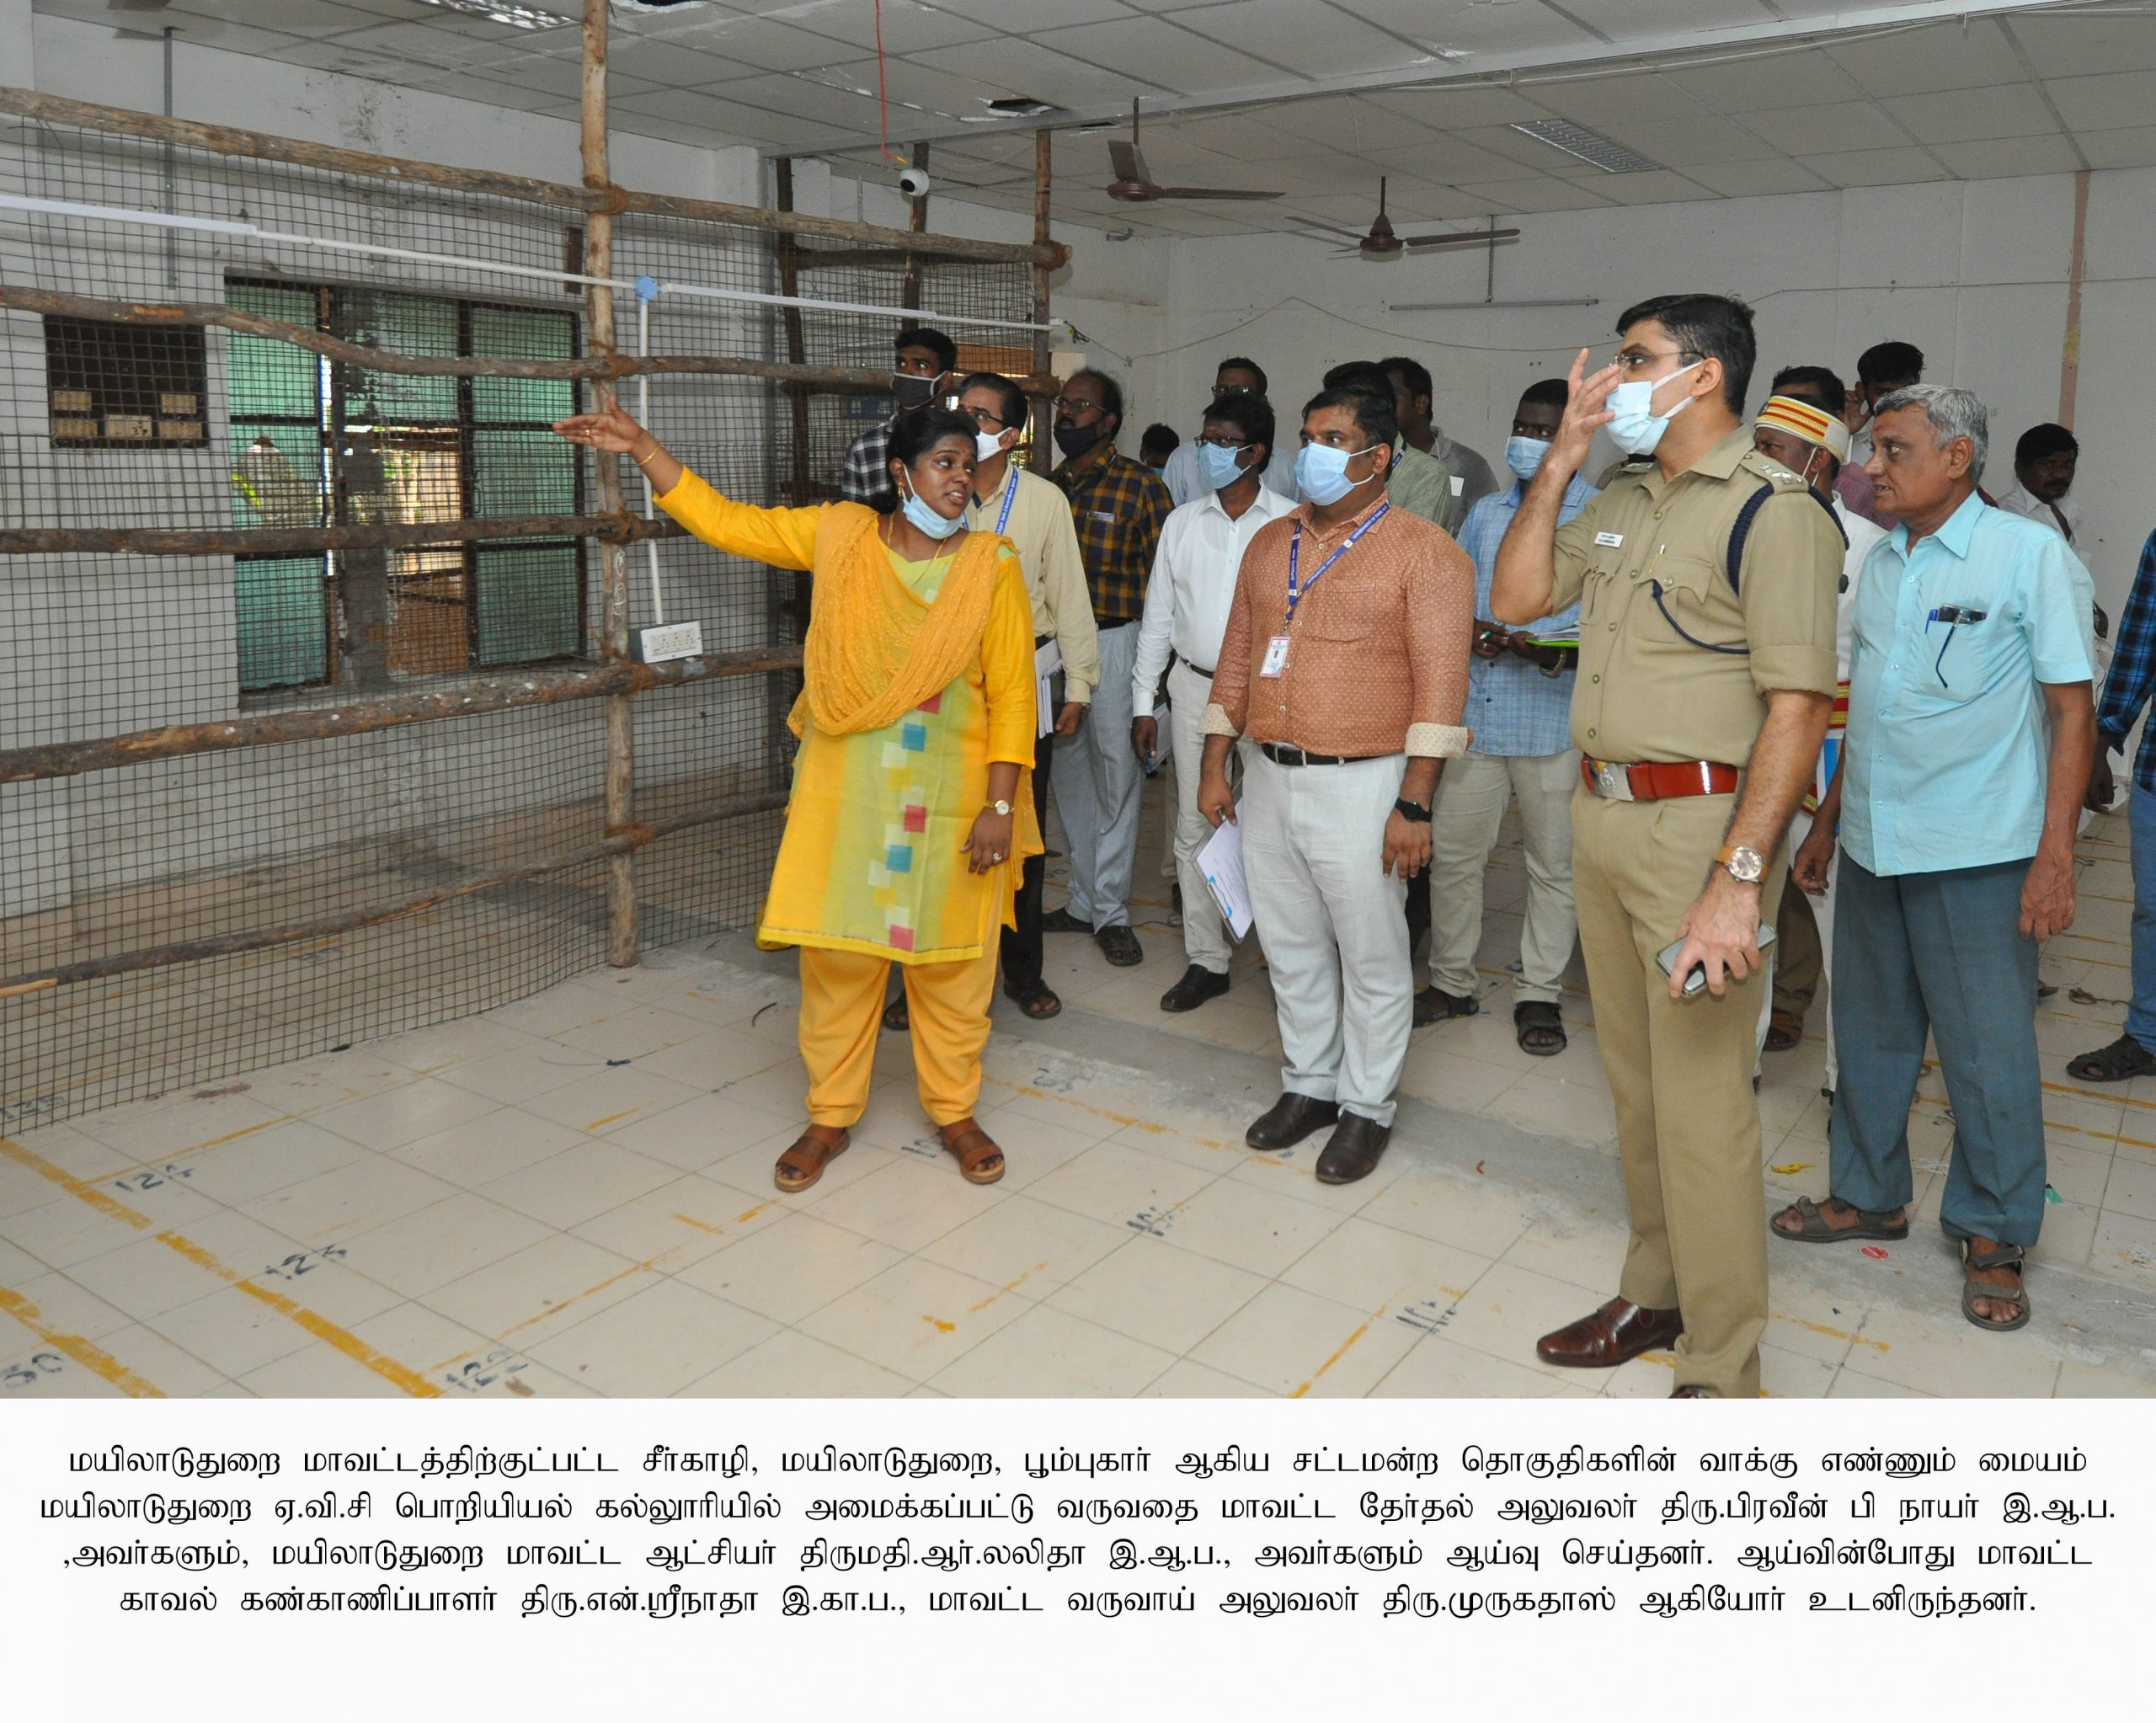 Counting Center Inspection – 01.04.2021